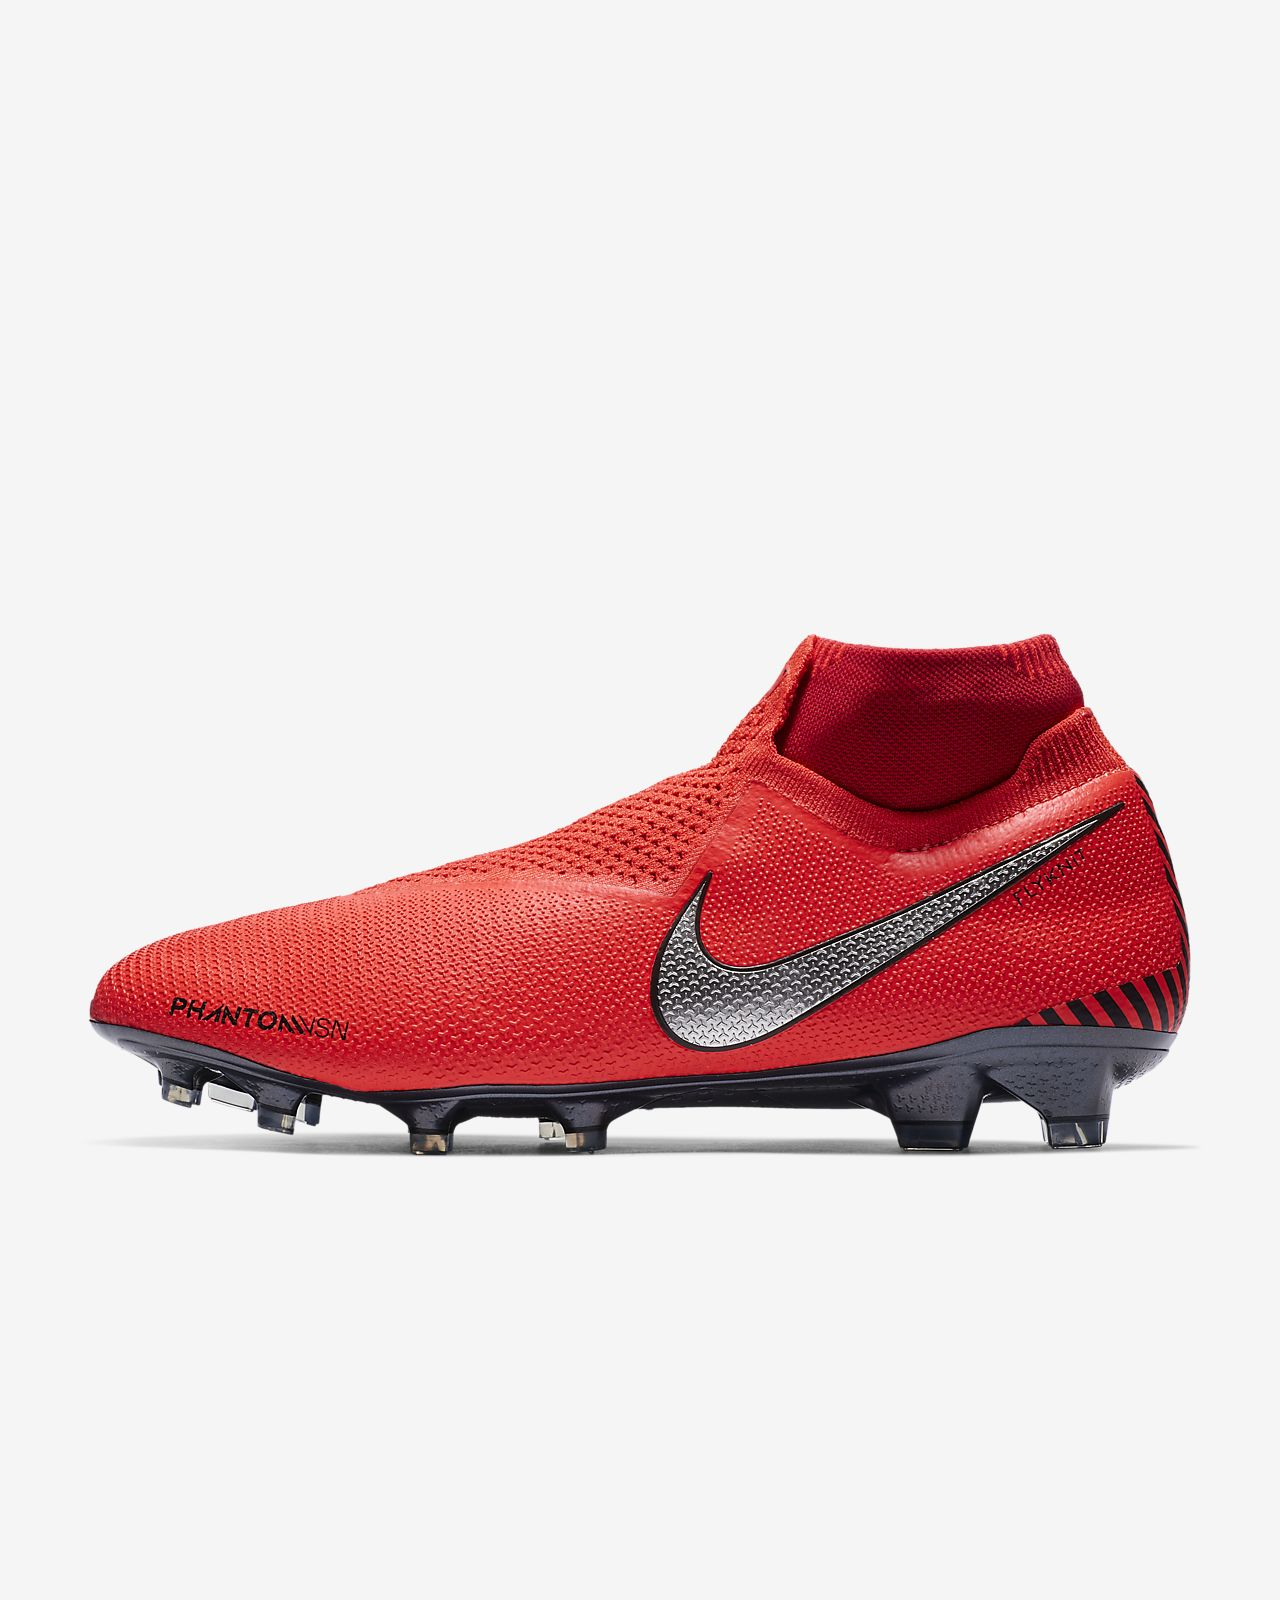 pretty nice cfe9e 88b8f ... Nike PhantomVSN Elite Dynamic Fit Game Over FG Firm-Ground Soccer Cleat